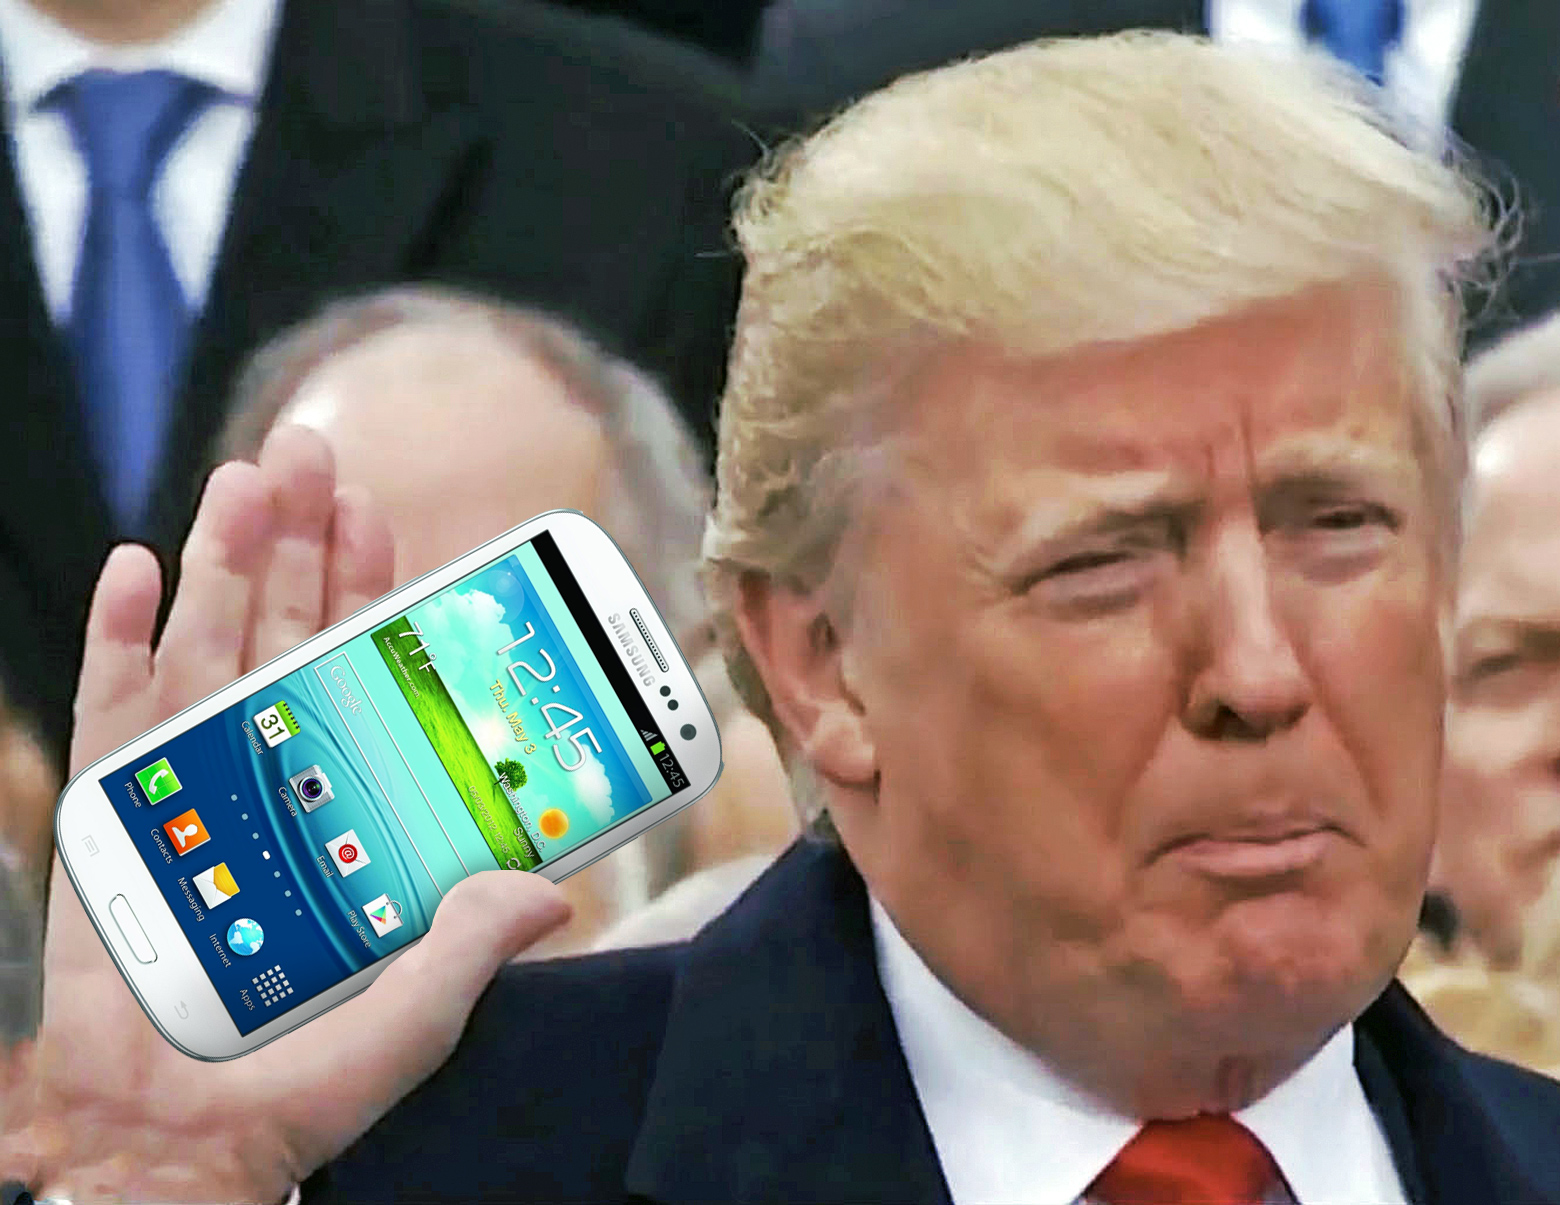 Donald Trump is still using his old phone, but not like ...